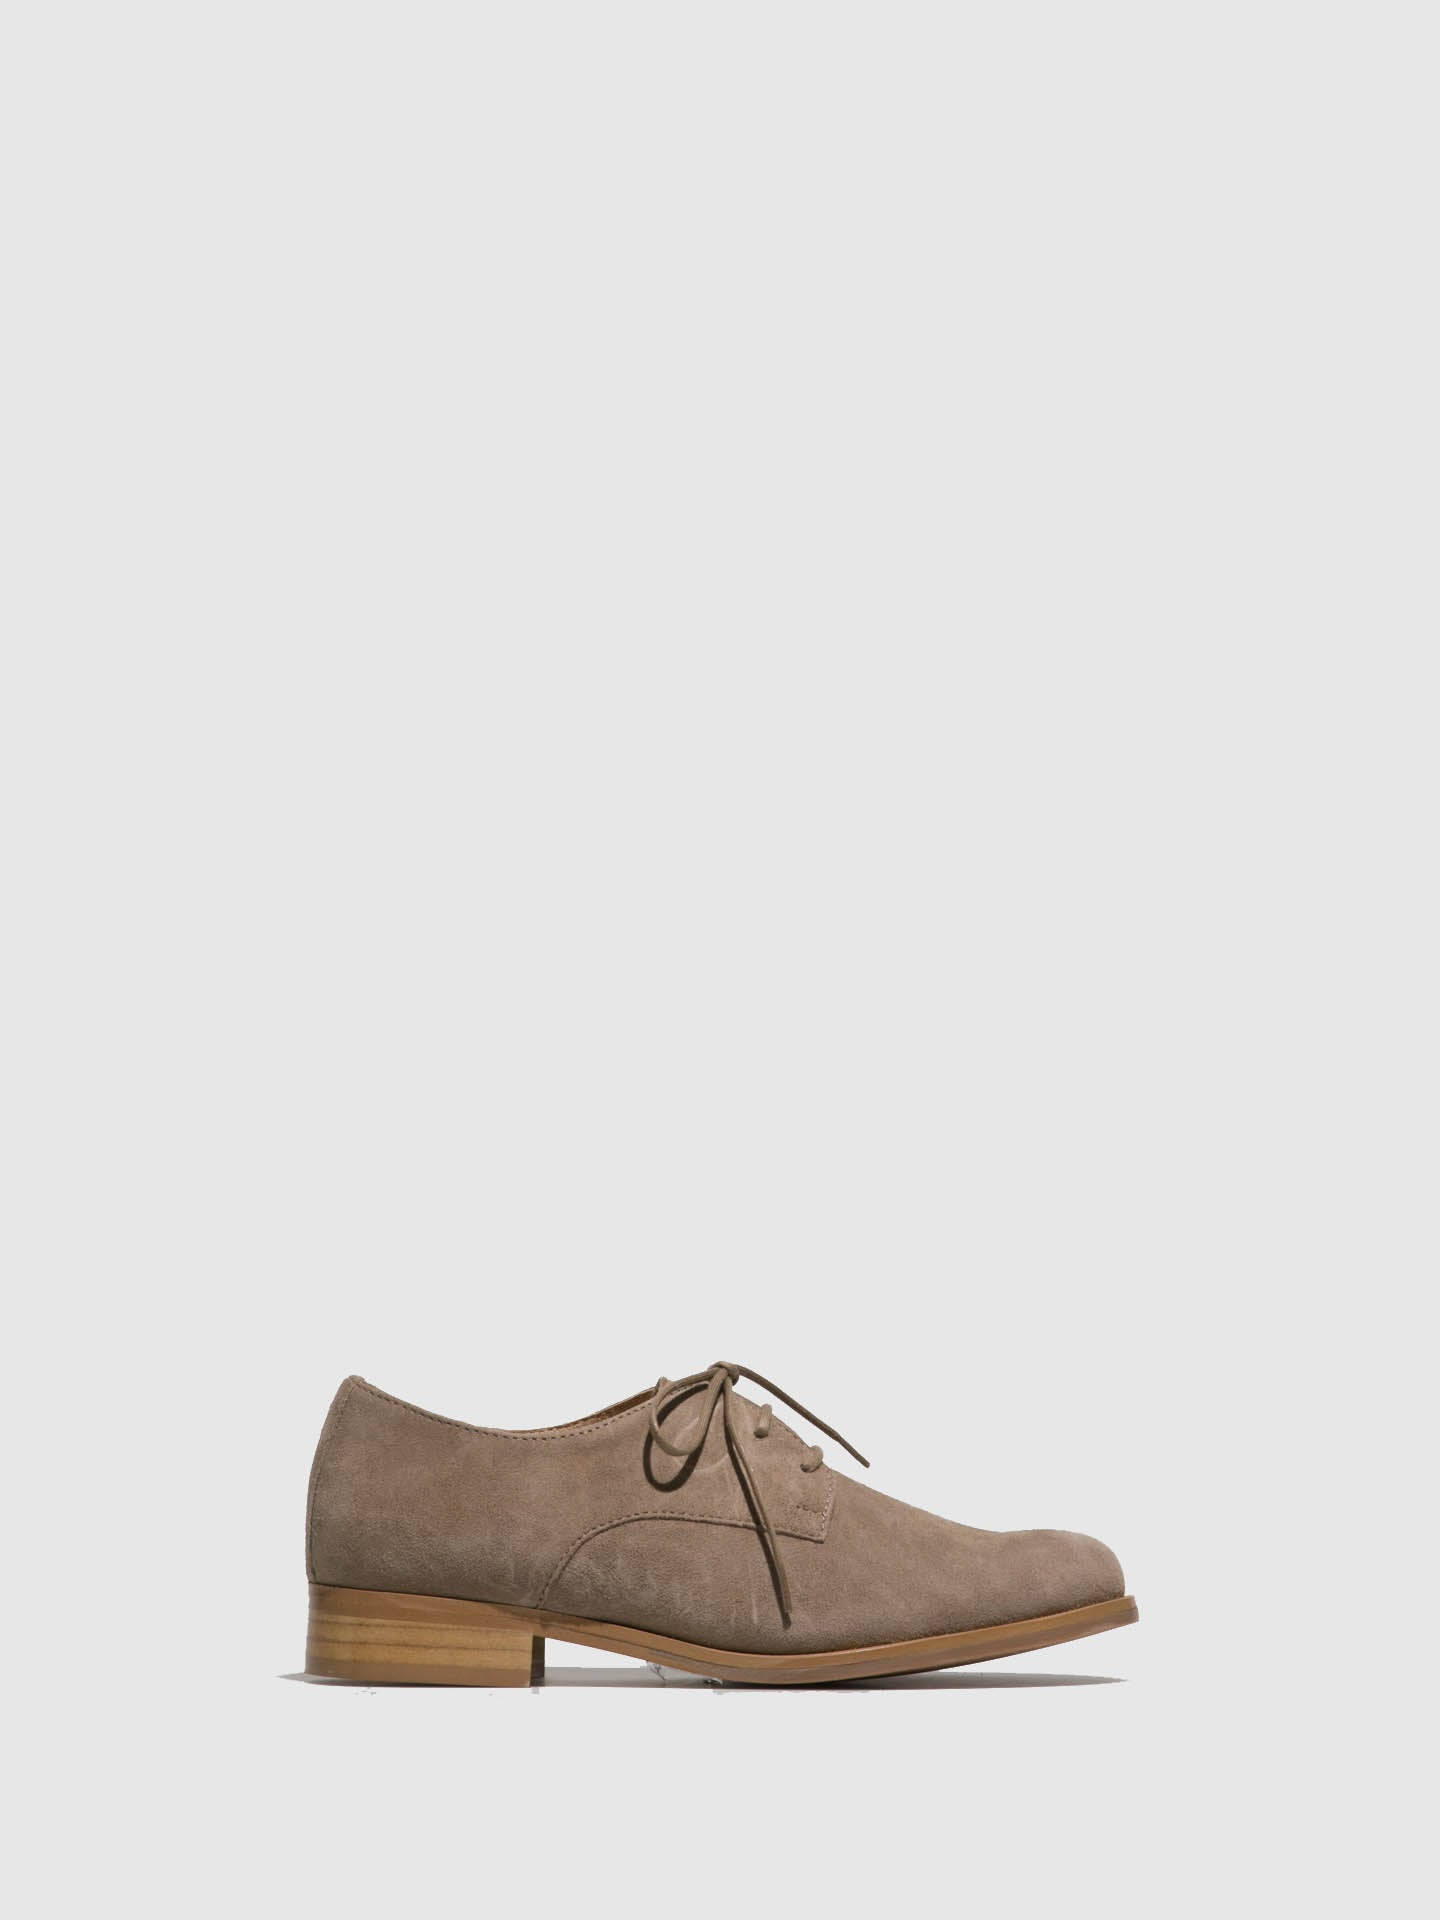 PintoDiBlu Beige Suede Lace-up Shoes